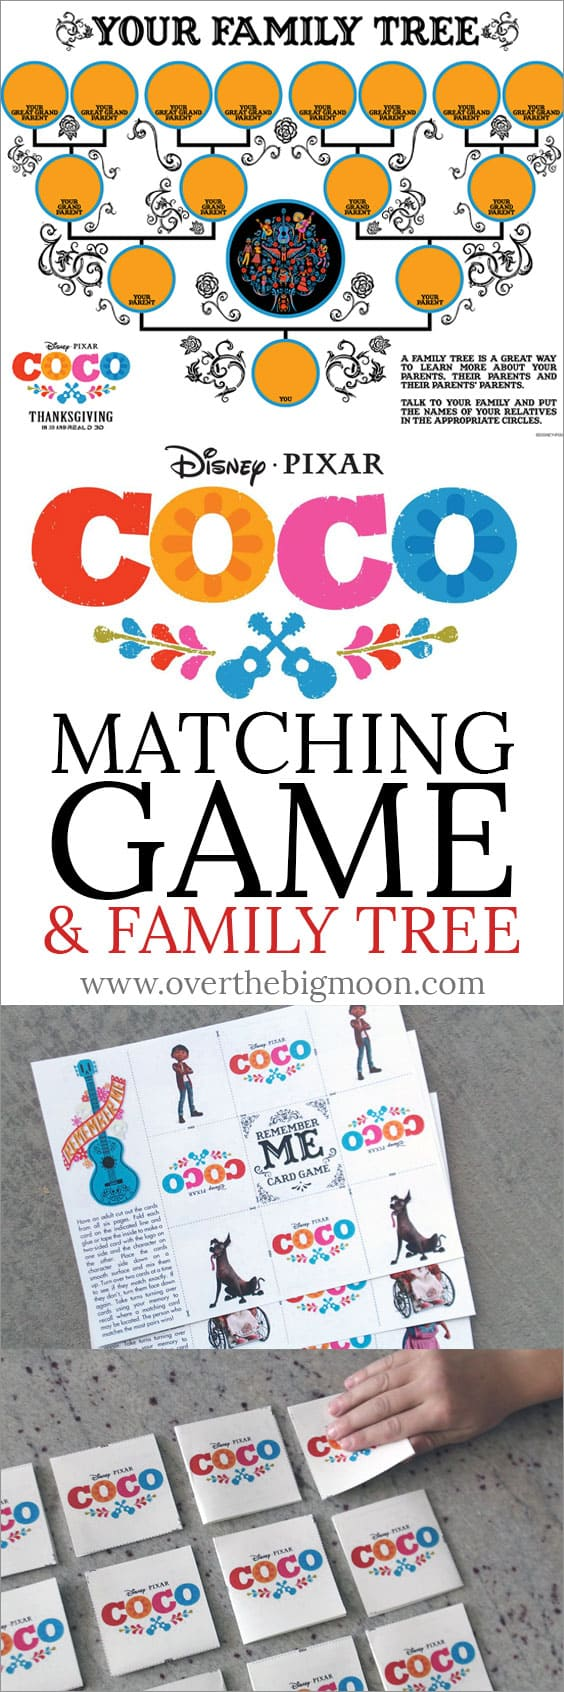 Disney Pixar Coco Matching Game, Family Tree and other kids printables and activities! From overthebigmoon.com!